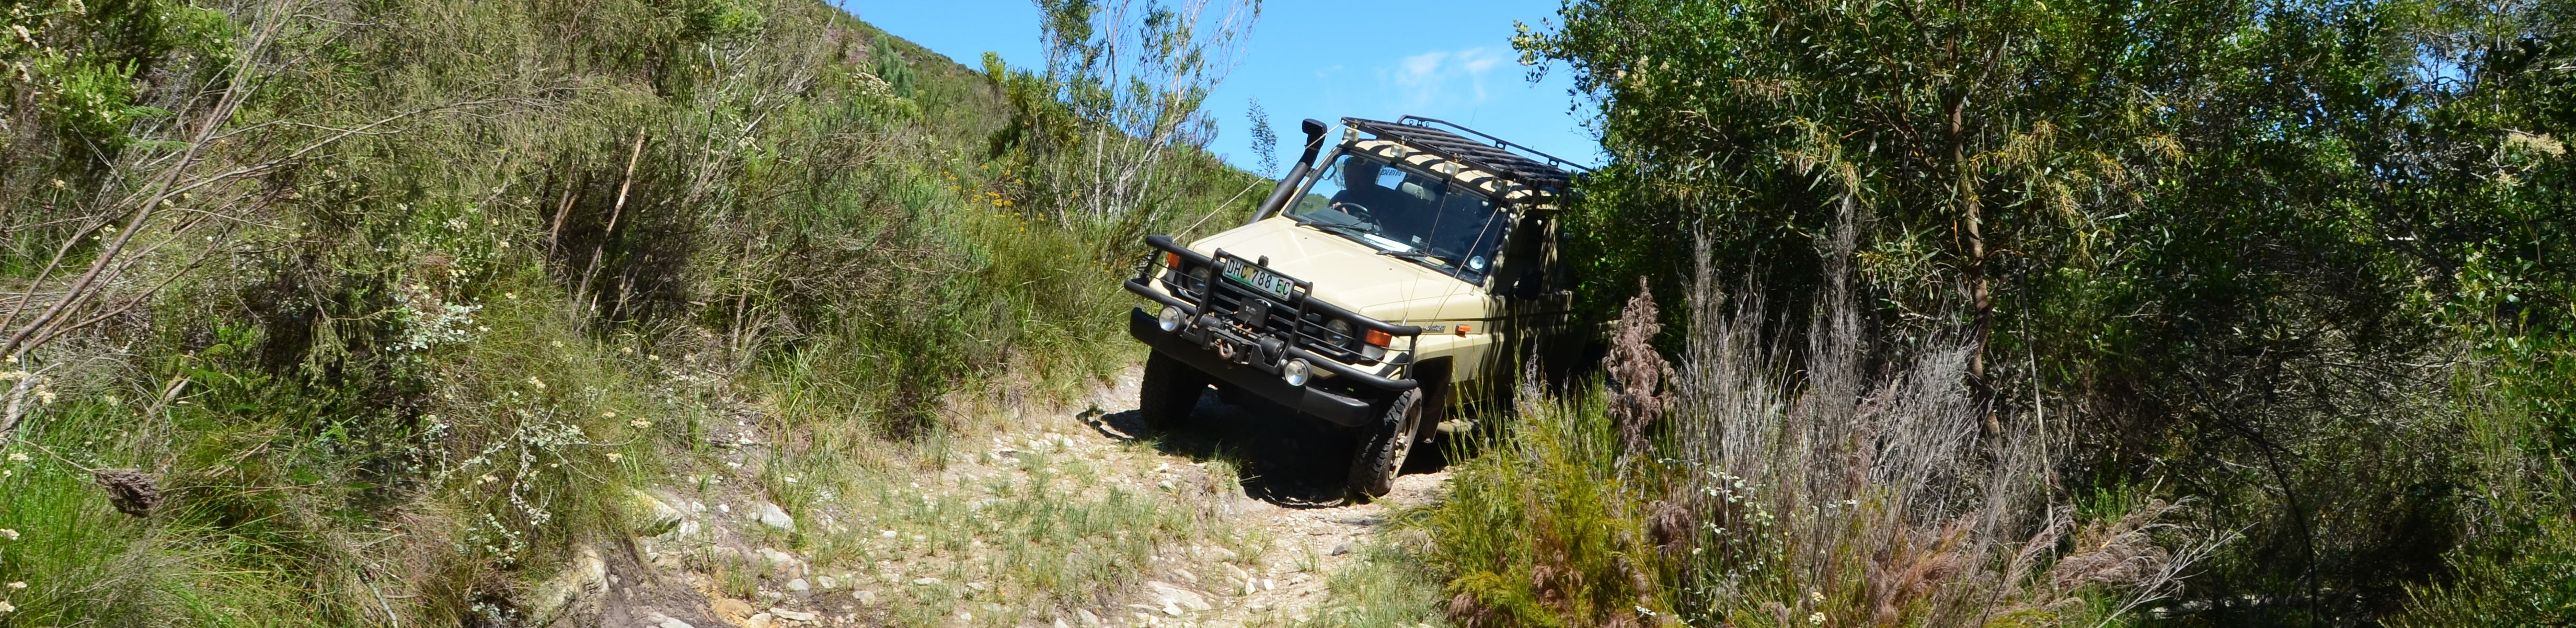 4x4 Africa - Basic off-road Driving